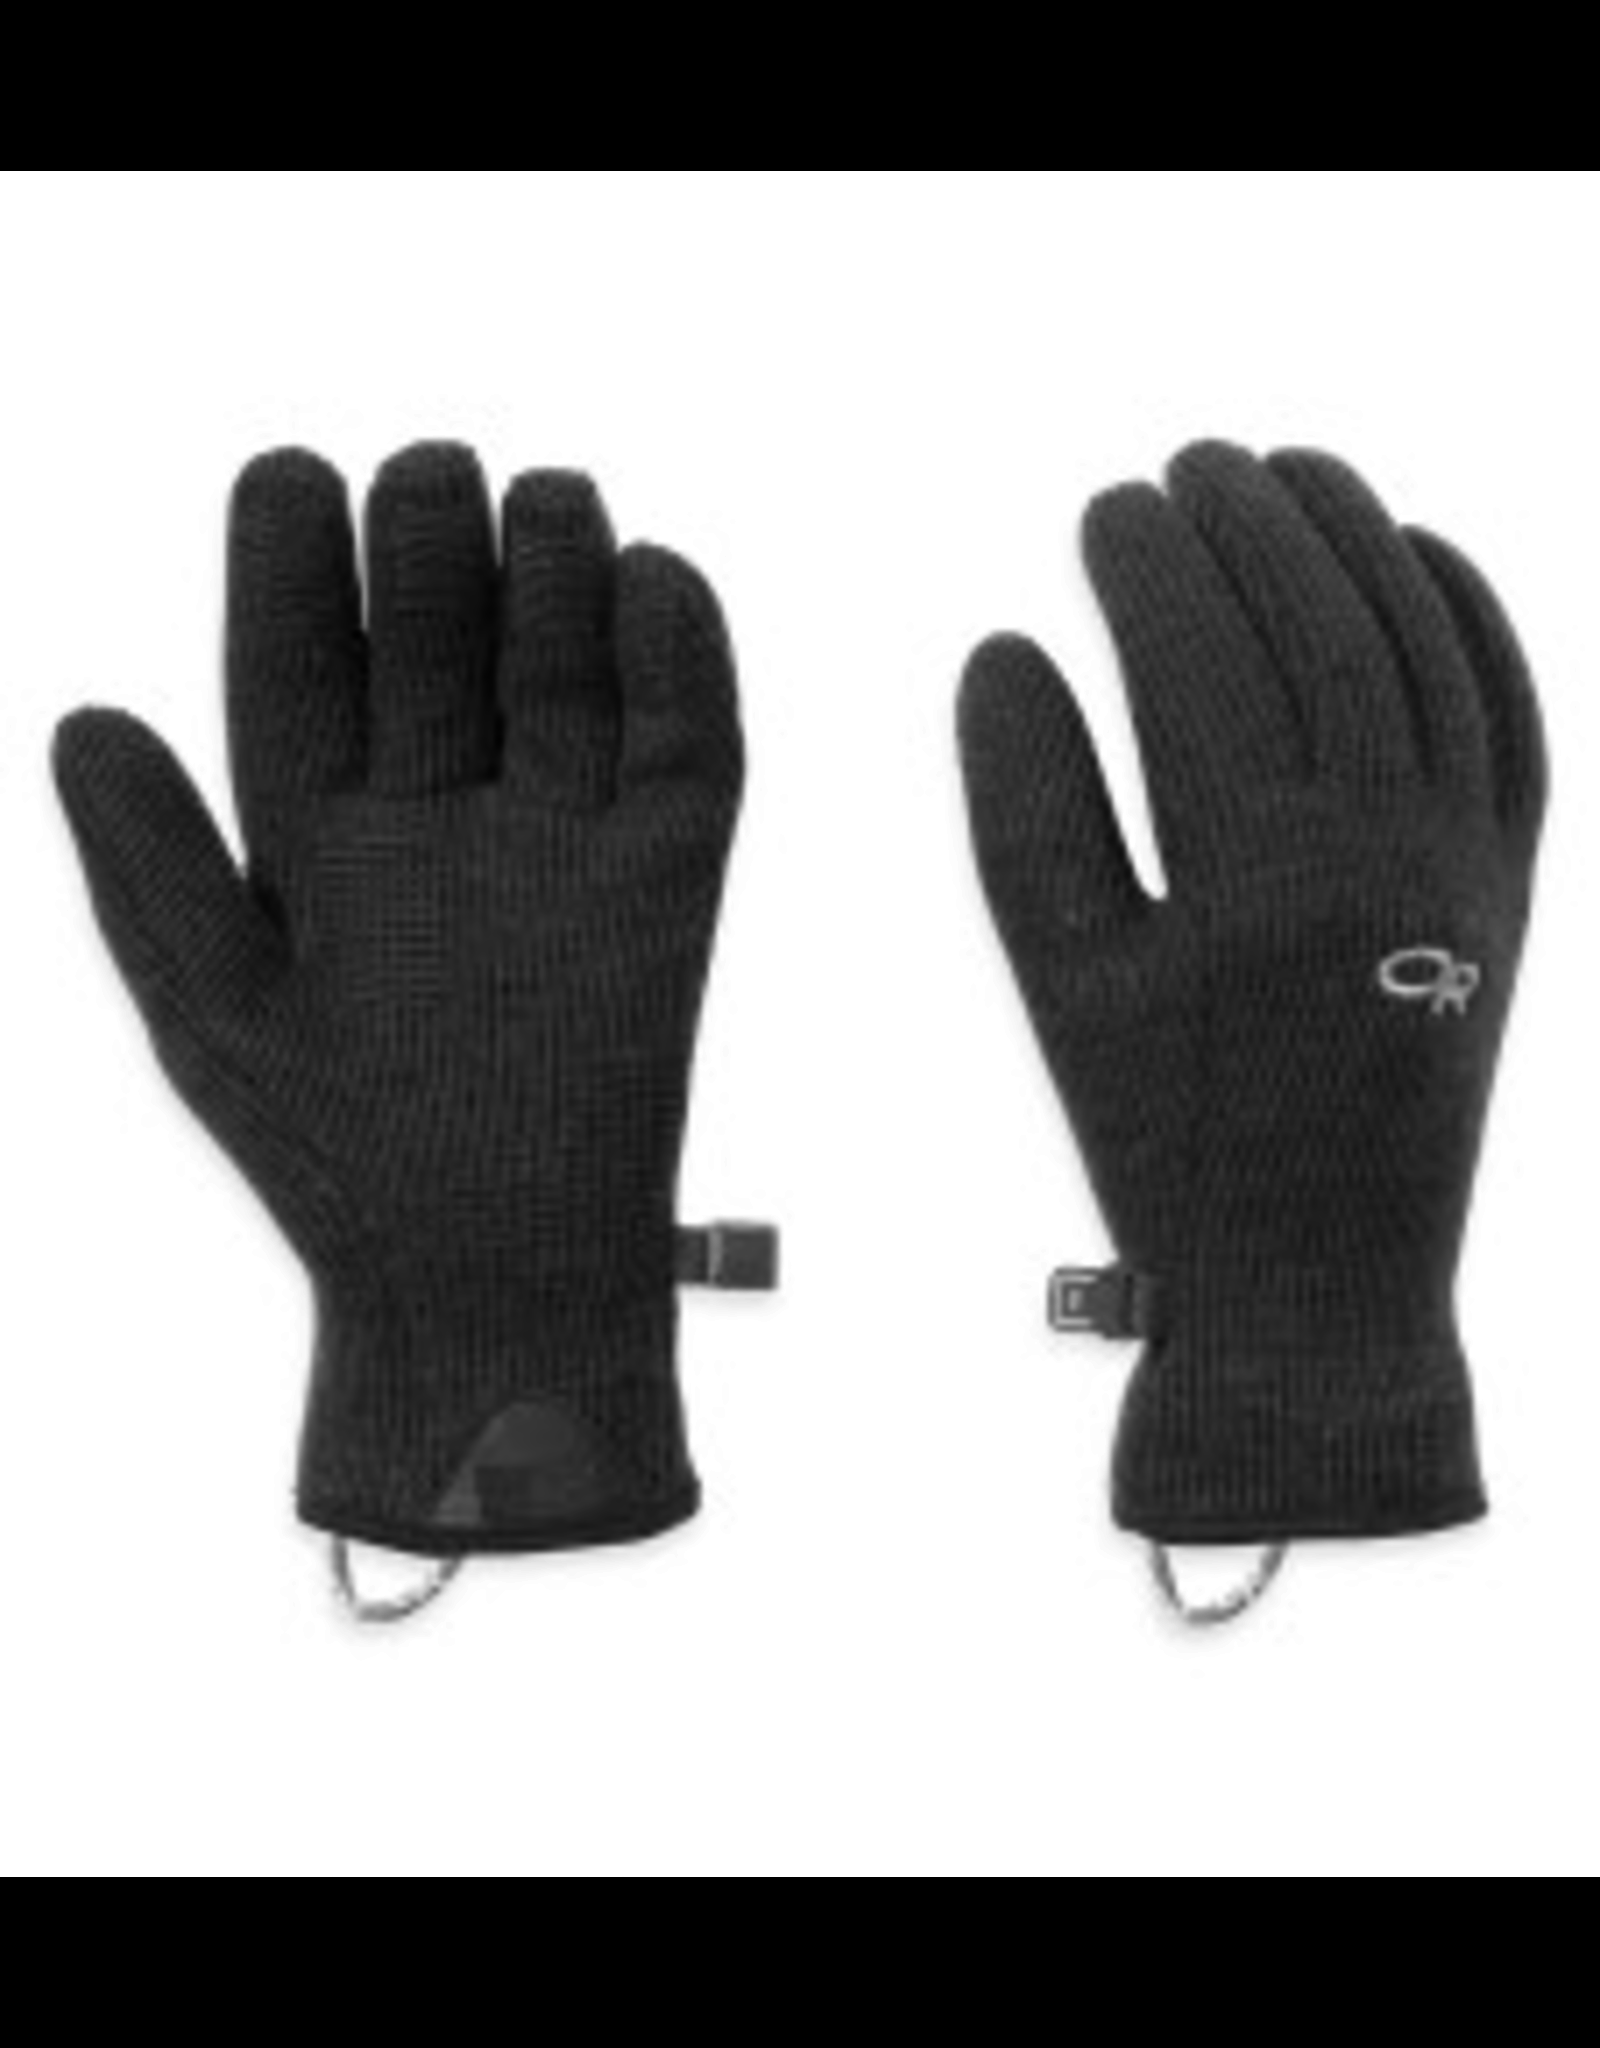 Outdoor Research Outdoor Research Women's Flurry Gloves